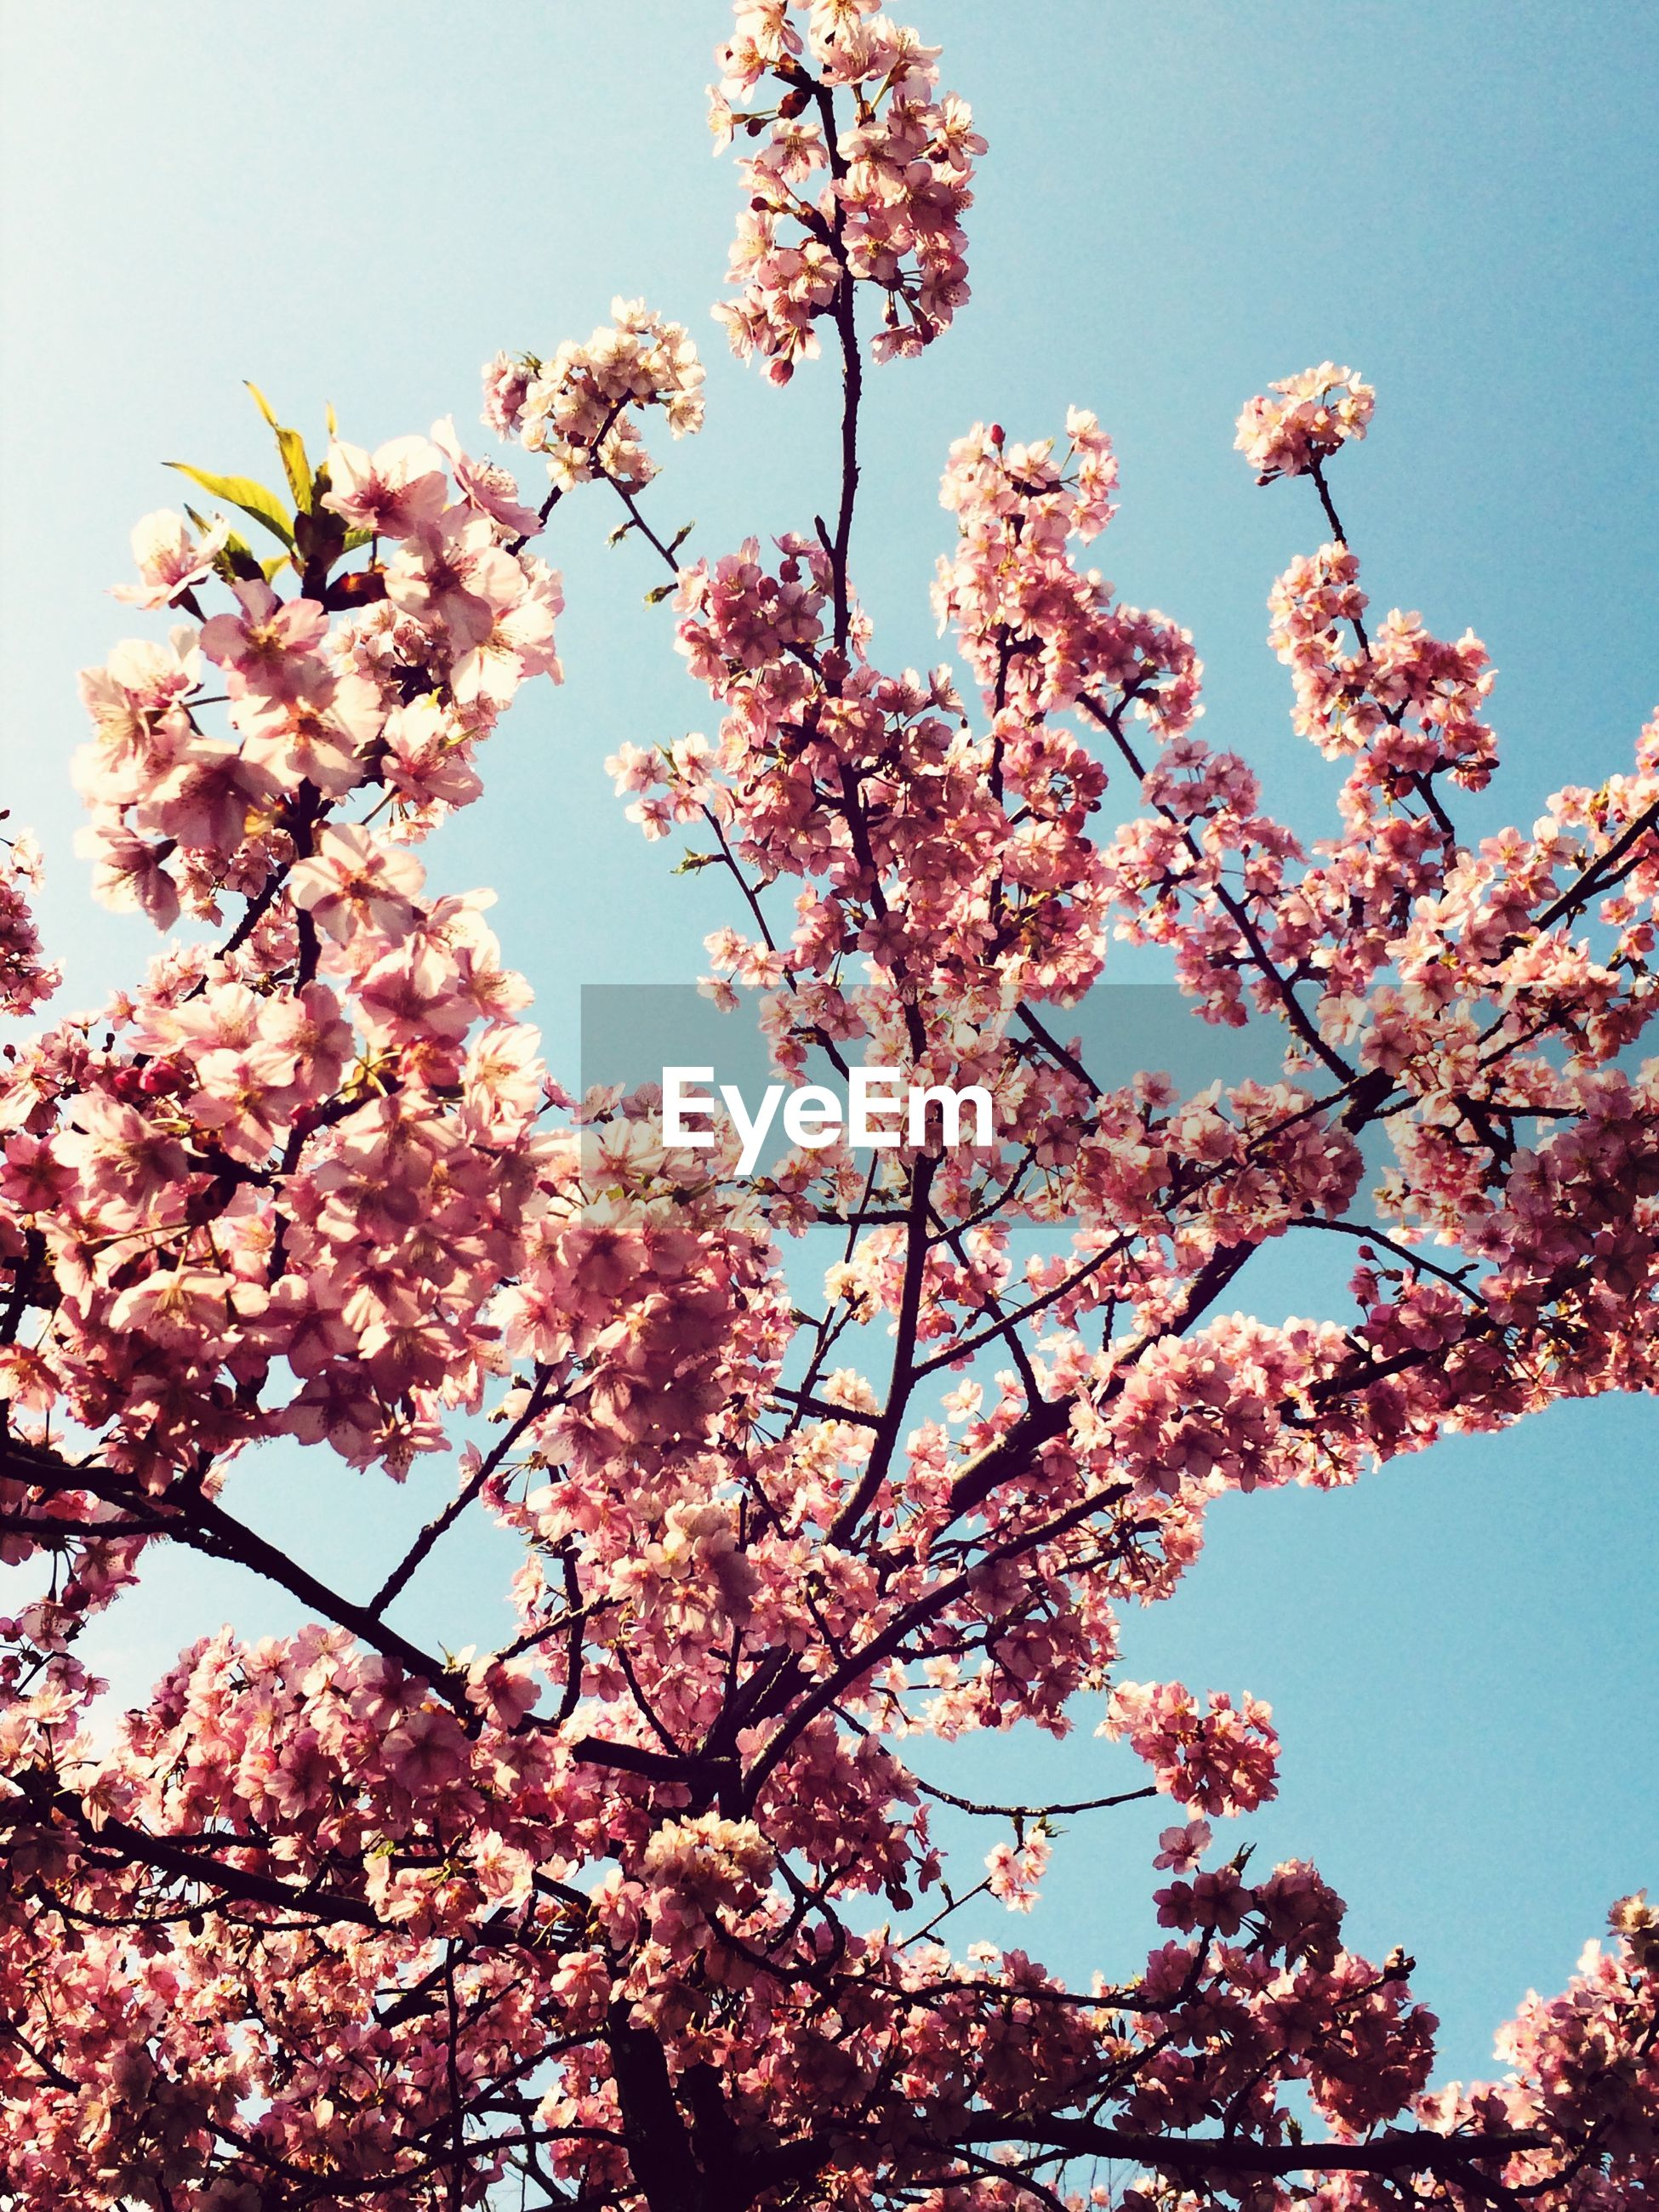 flower, low angle view, branch, tree, freshness, growth, clear sky, blossom, beauty in nature, fragility, cherry blossom, cherry tree, nature, fruit tree, in bloom, pink color, blooming, springtime, sky, orchard